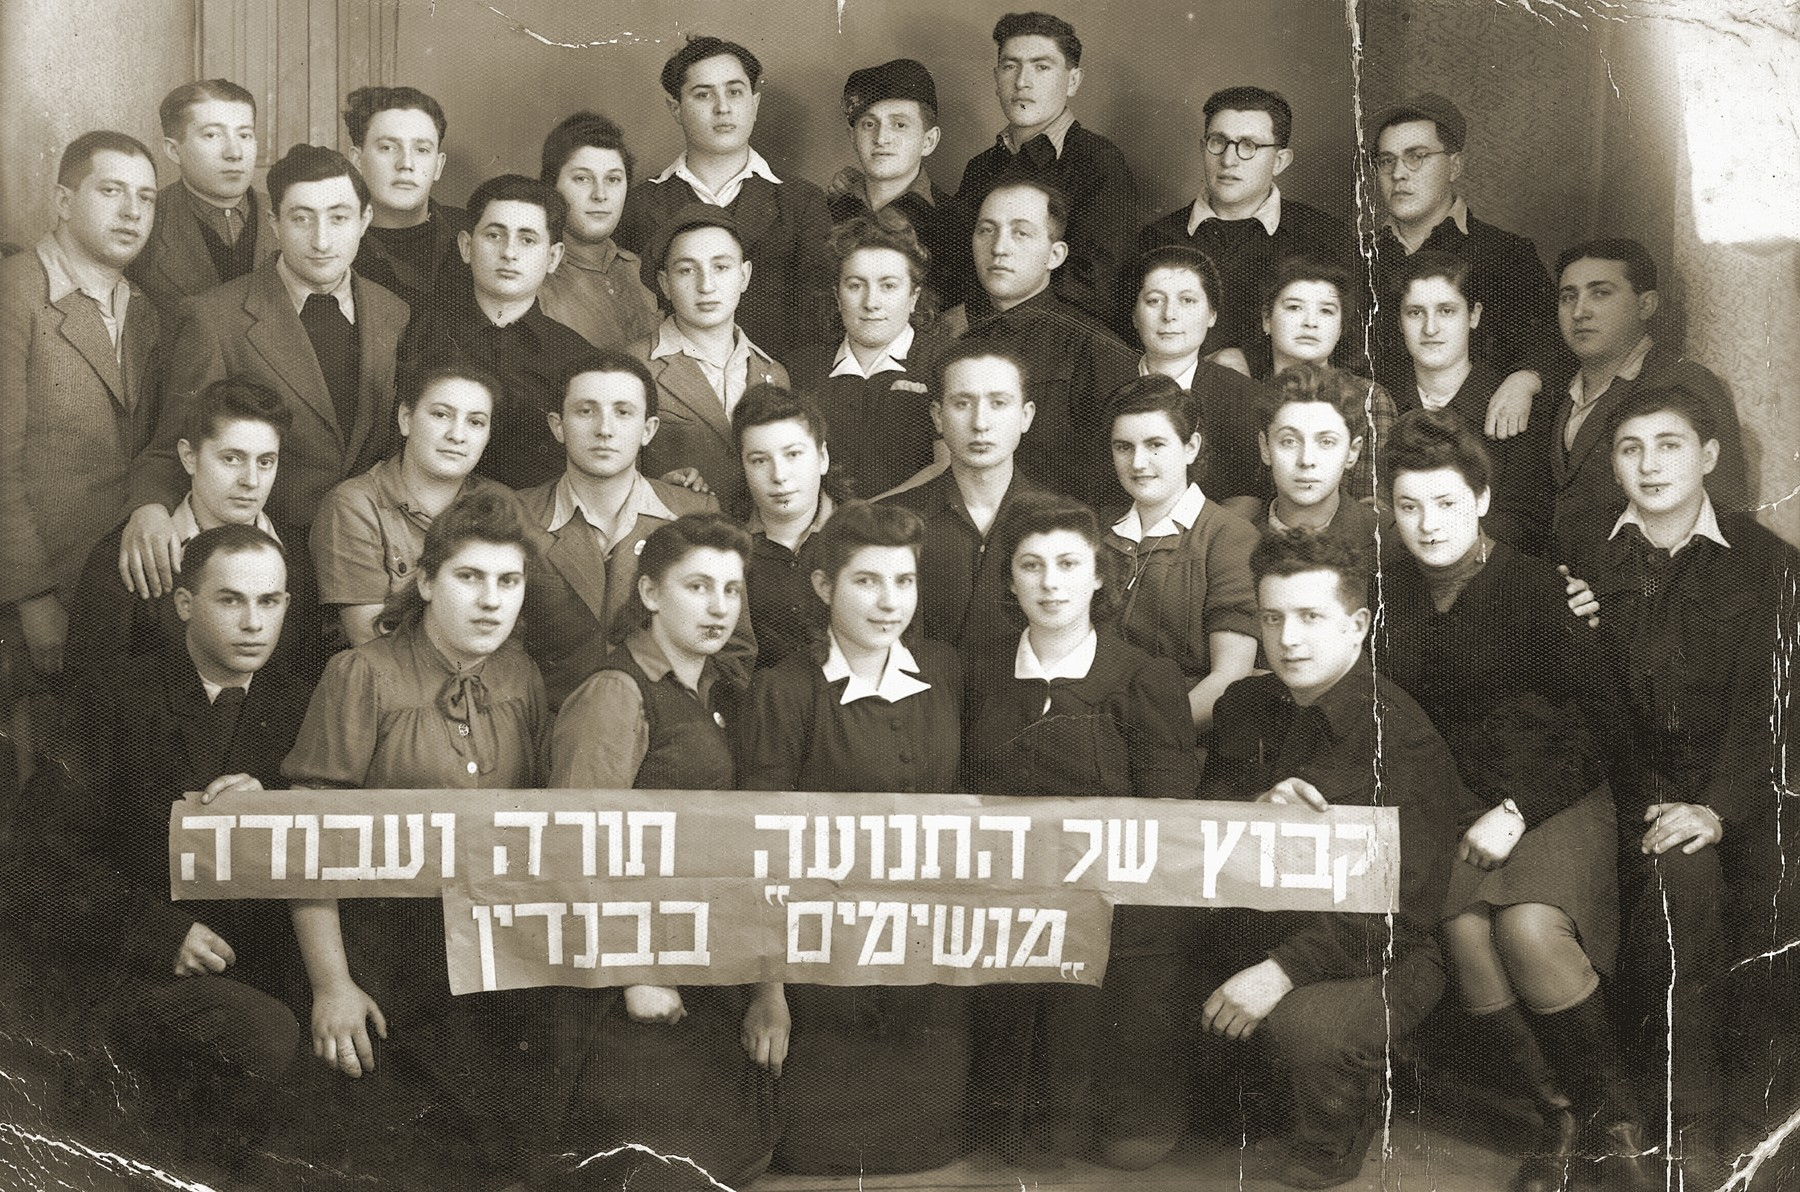 Members of Kibbutz Magshimim in Bedzin, Poland shortly after the war.  Yehiel Hershkowitz is kneeling in the front row.  Esther Urman is in the second row, fourth from the right.